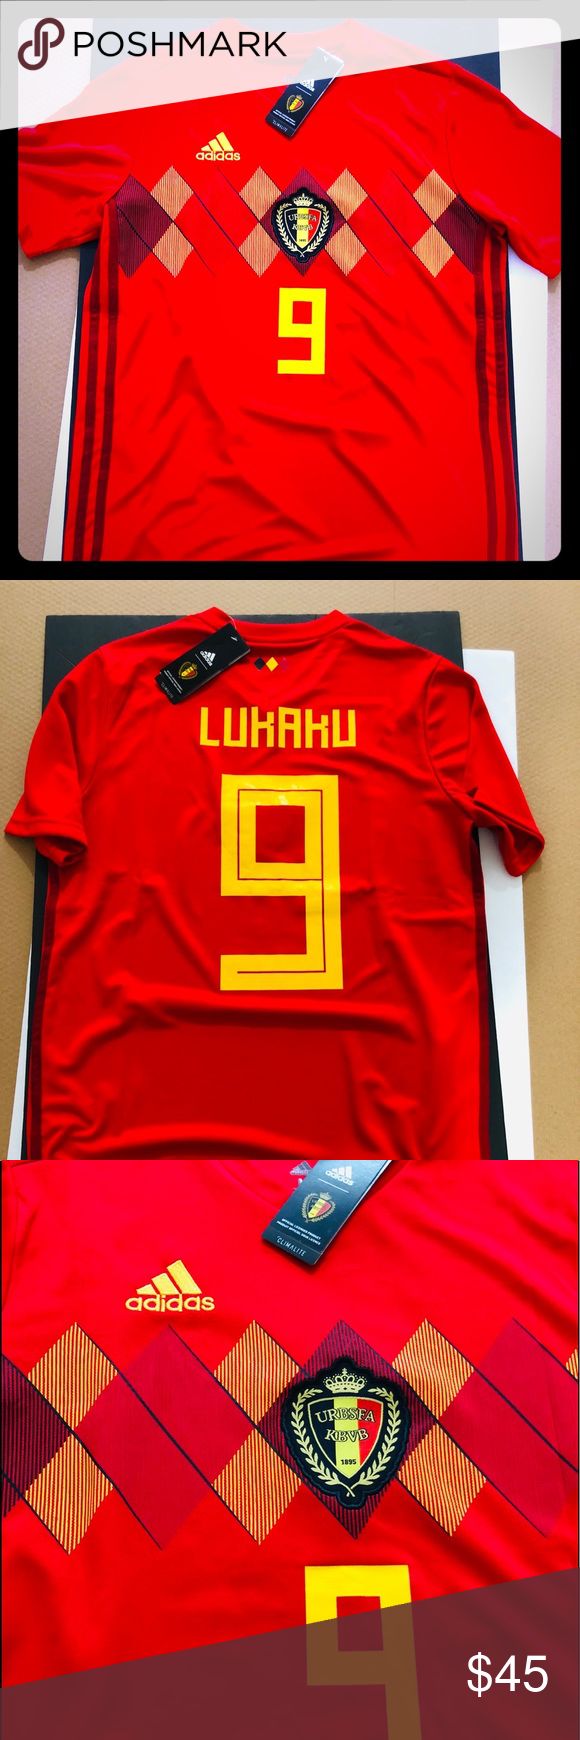 a5d46dffa LUKAKU #9 Soccer Jersey 2018 World Cup Belgium 2018 Belgium World Cup  Soccer Jersey Romelu Lukaku #9 Adult sizes: SMALL to XL New w/ Tags The  team that ...